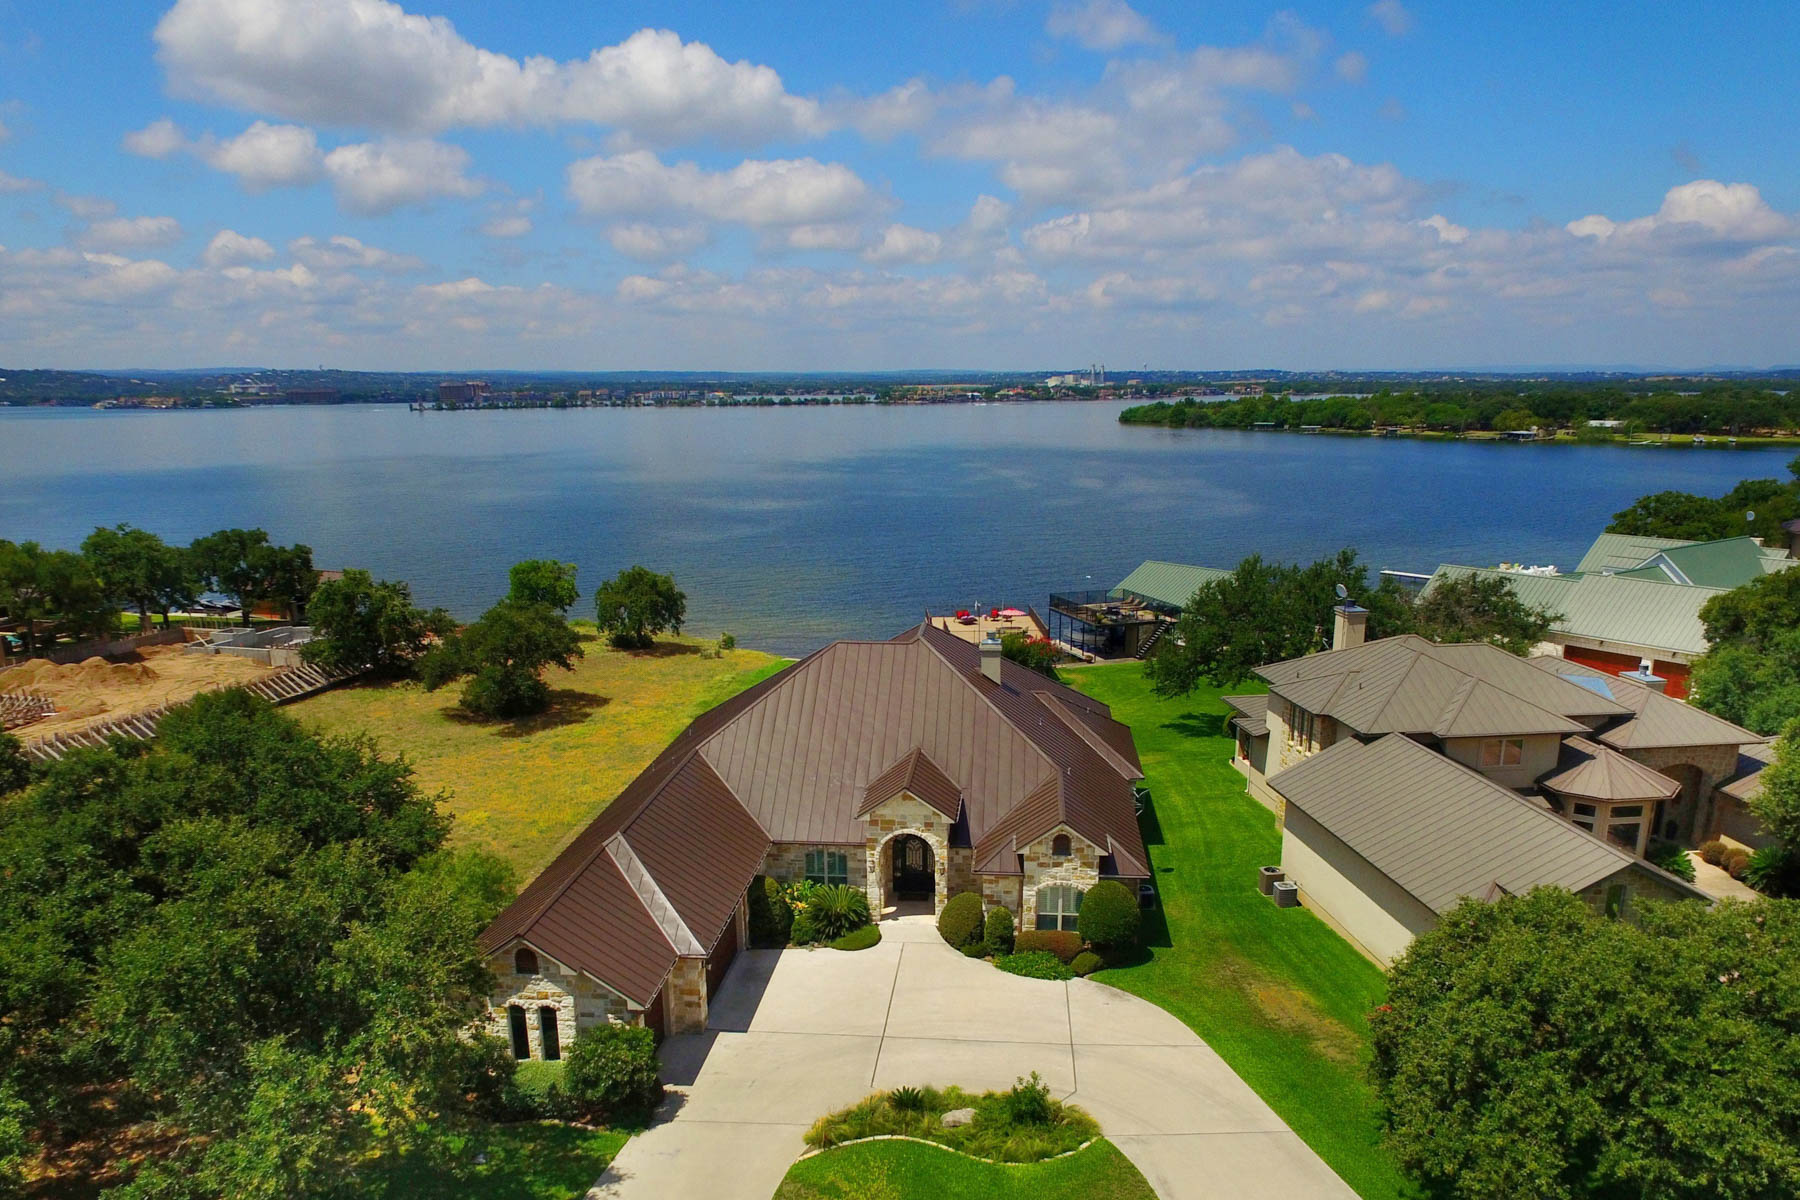 Single Family Home for Sale at Absolute Paradise on Lake LBJ 125 Wilderness Cv Marble Falls, Texas, 78654 United States